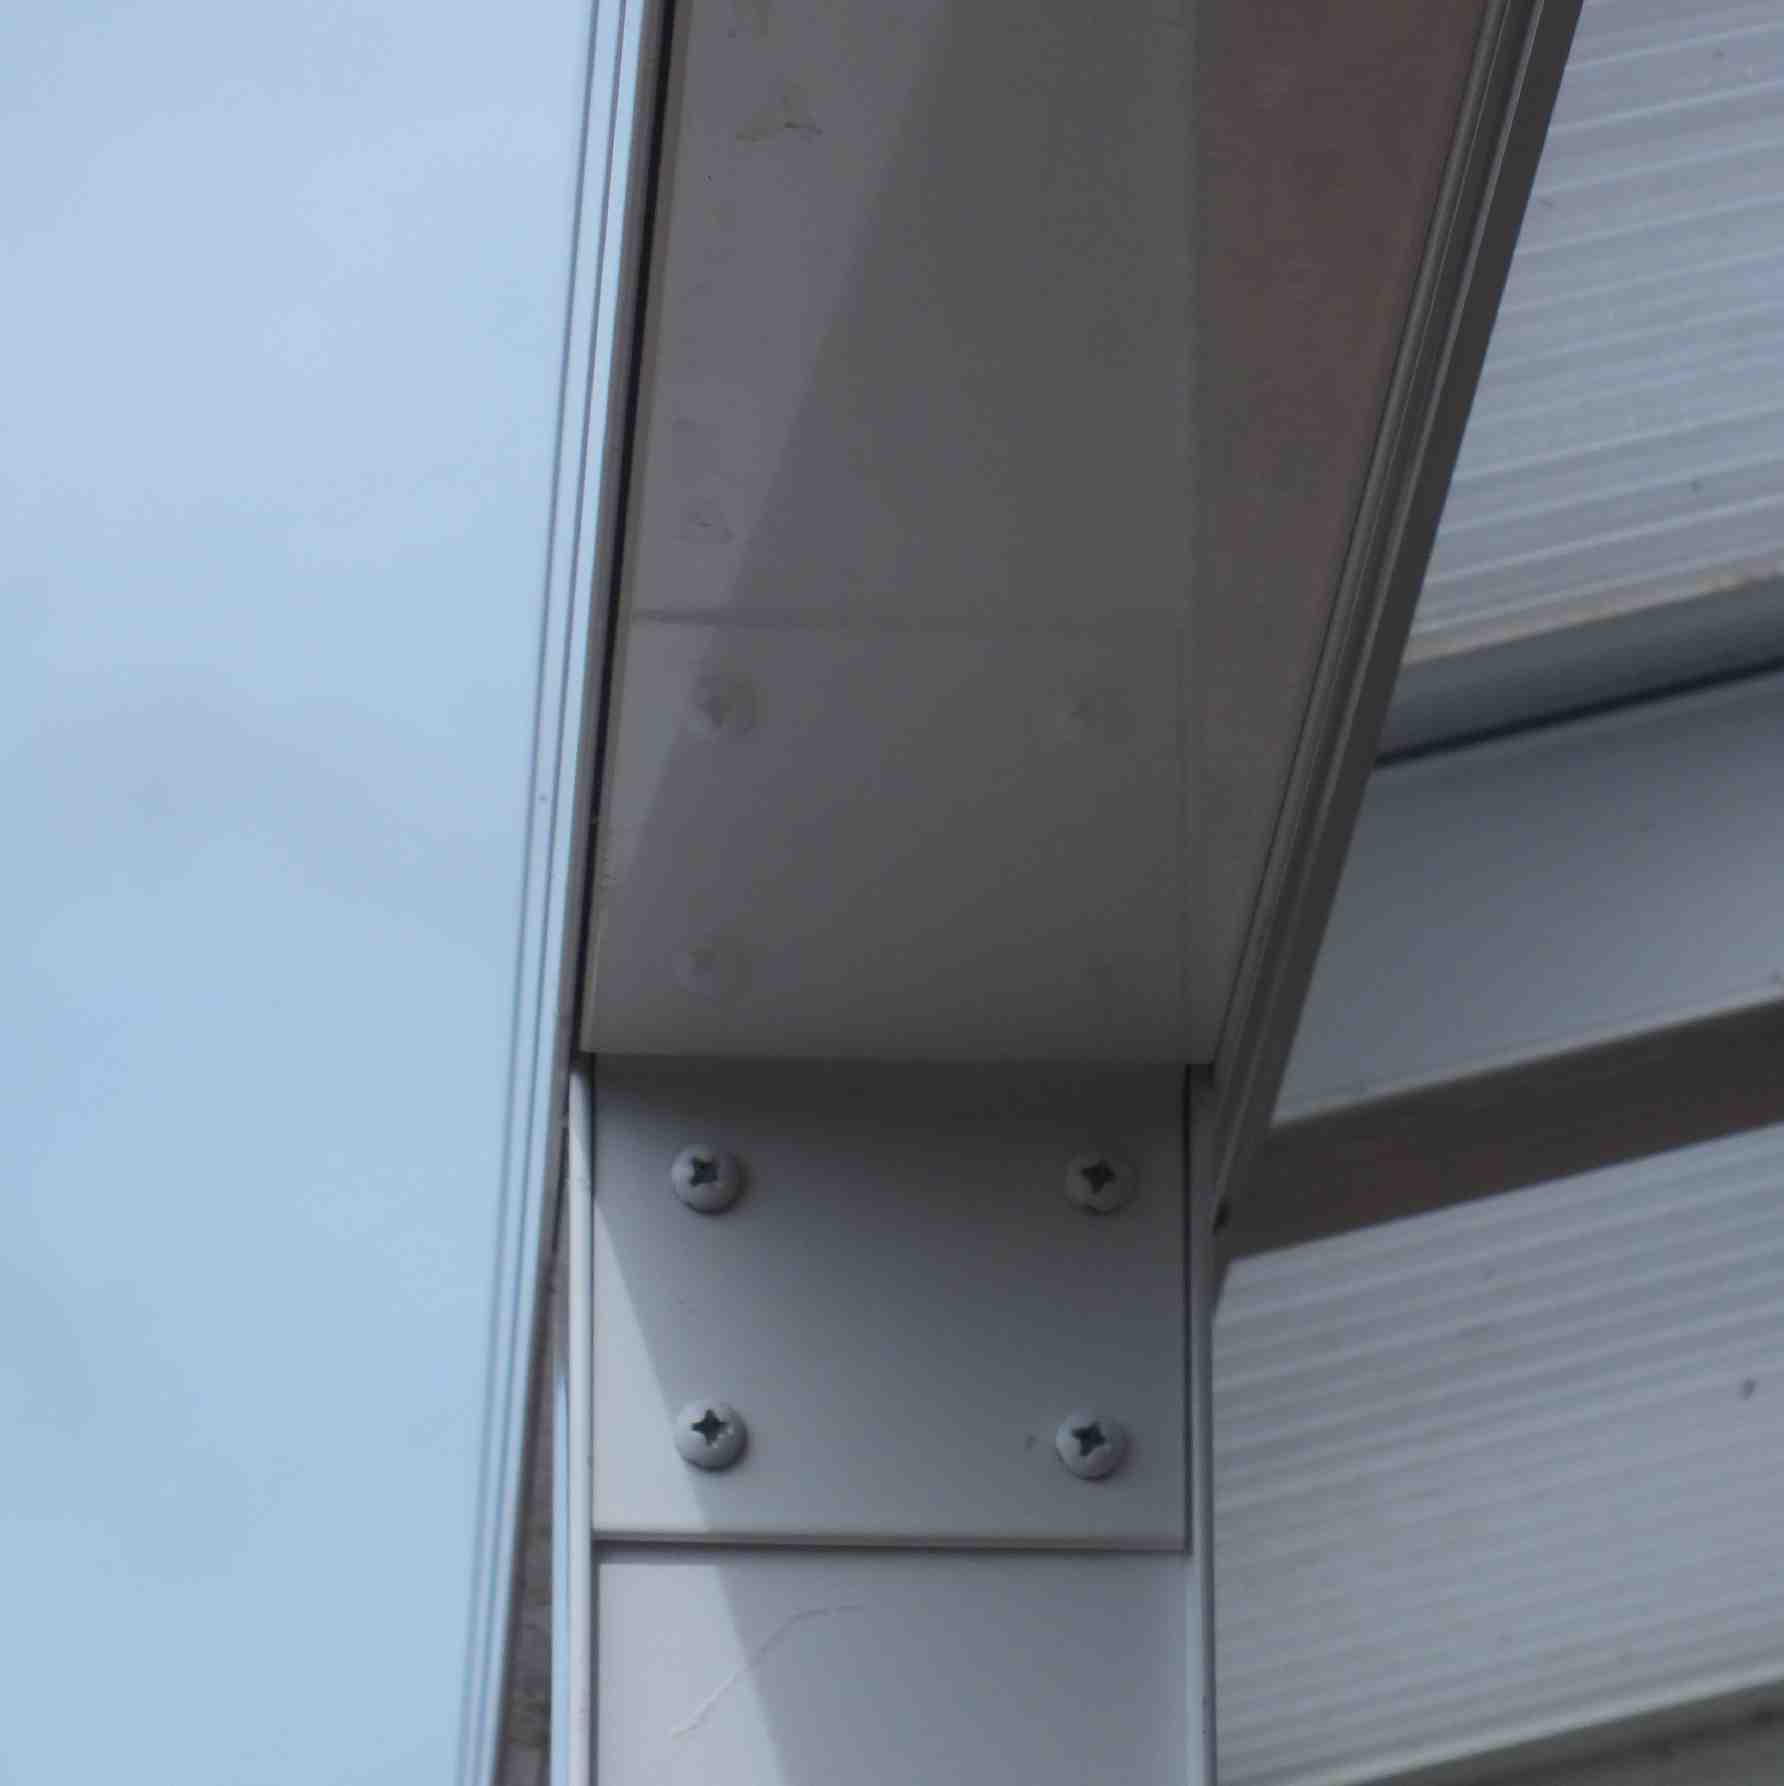 Affordable Omega Verandah with 6mm Glass Clear Plate Polycarbonate Glazing - 3.5m (W) x 3.0m (P), (3) Supporting Posts